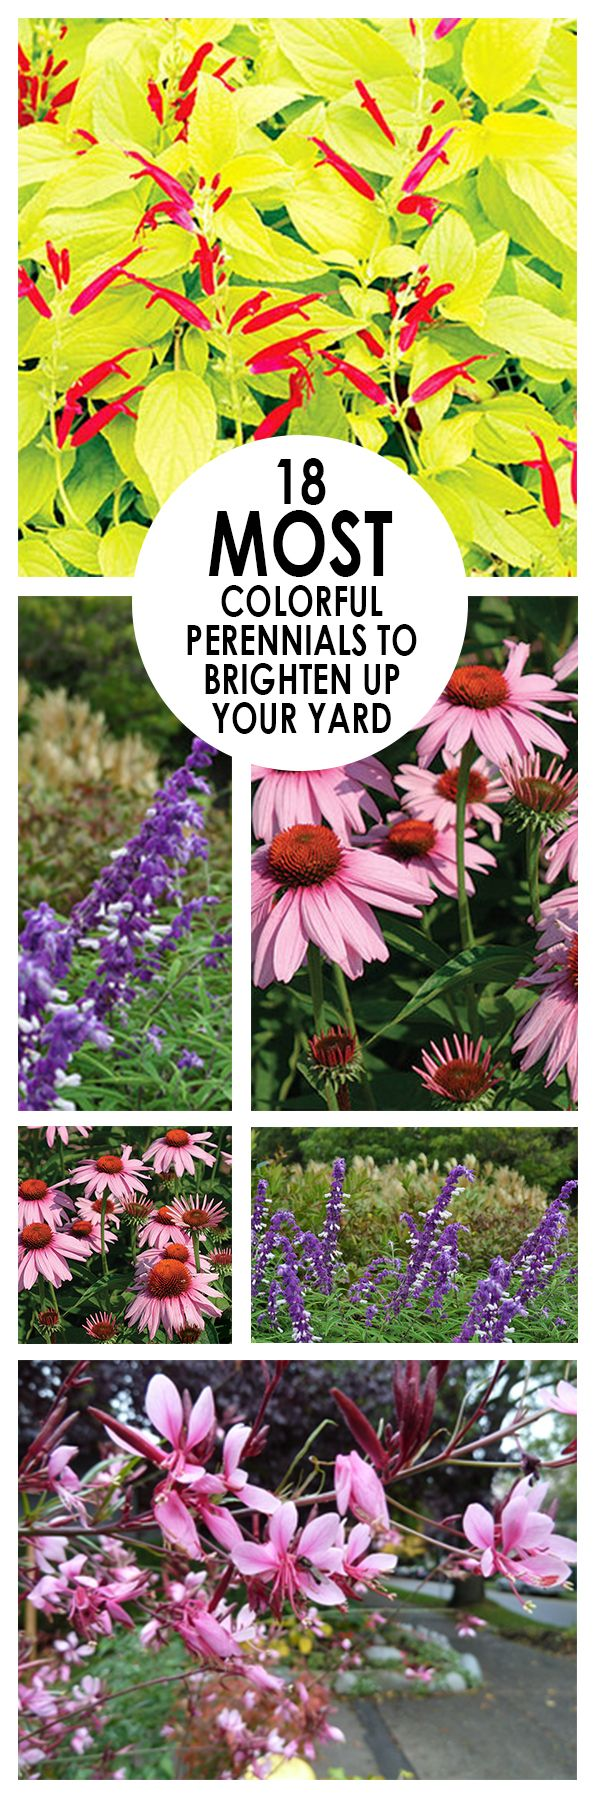 18 Most Colorful Perennials to Brighten Up Your Yard